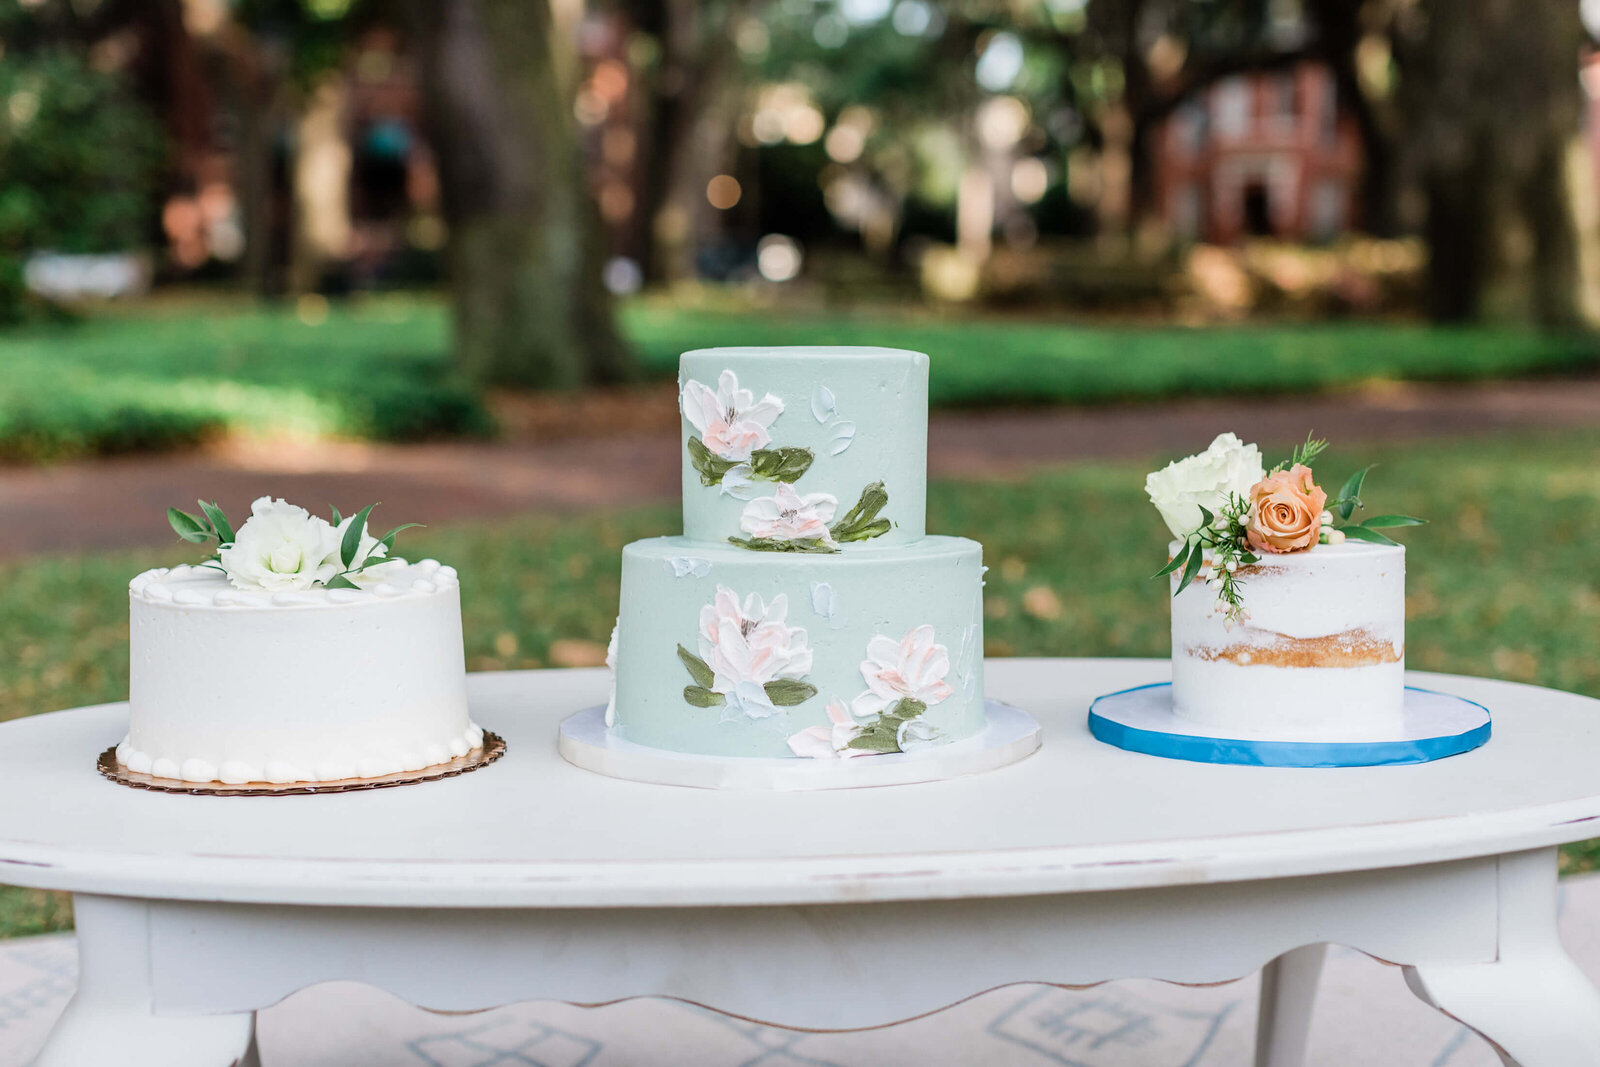 Cake by Wicked Cakes - Savannah Elopement Package